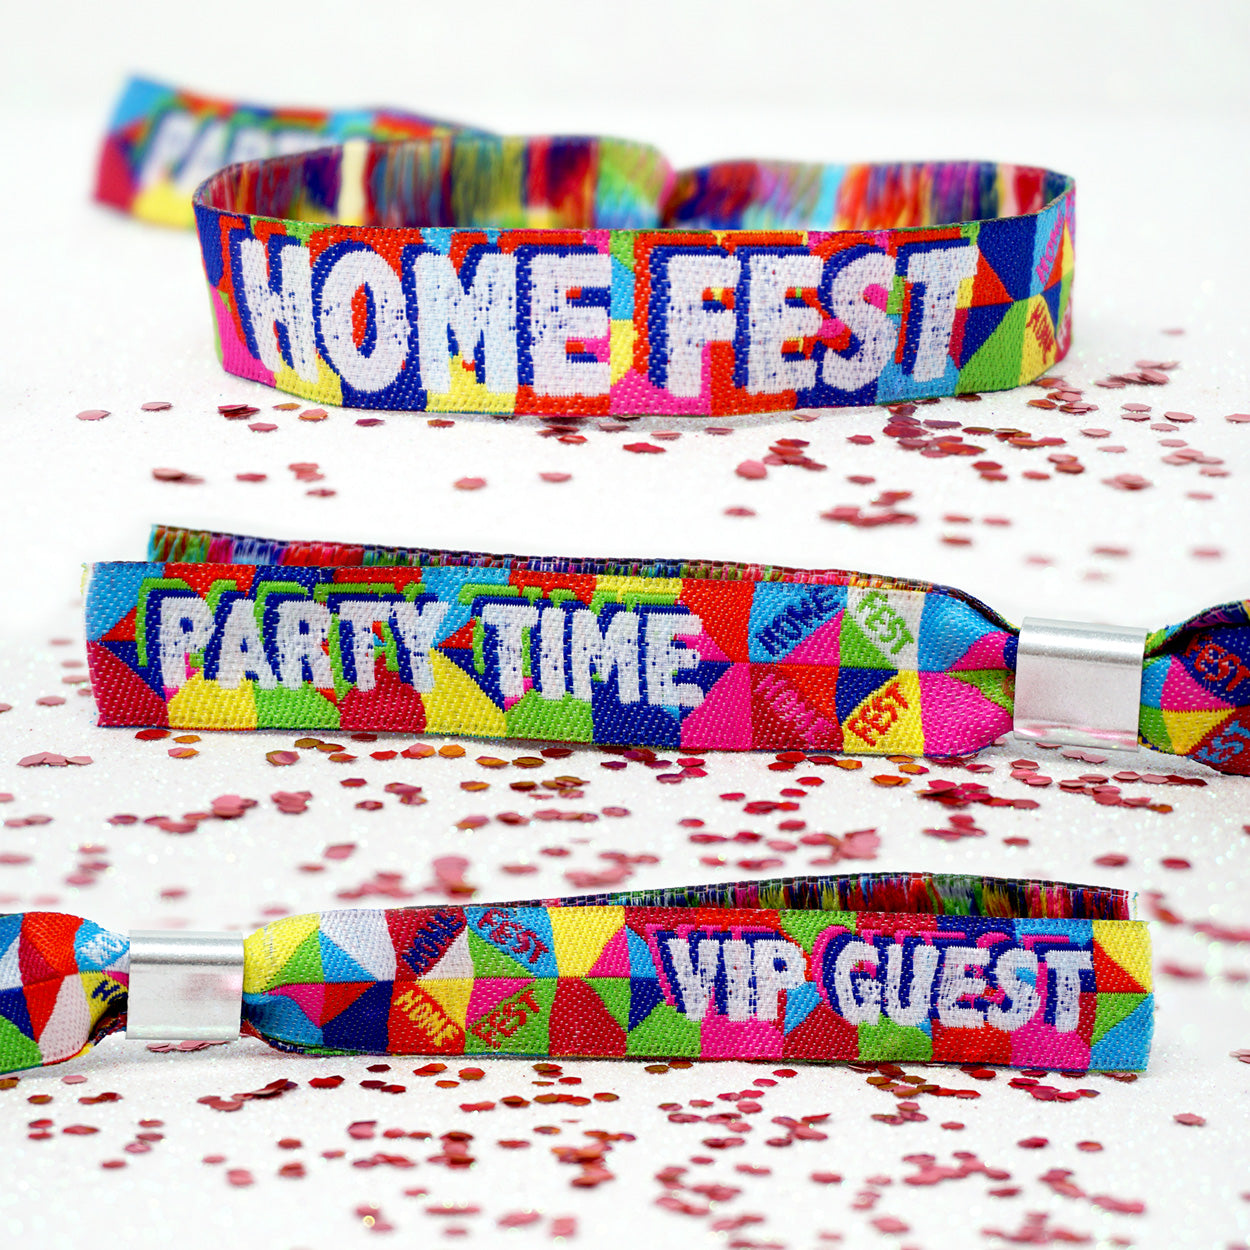 HOMEFEST festival party at home wristbands